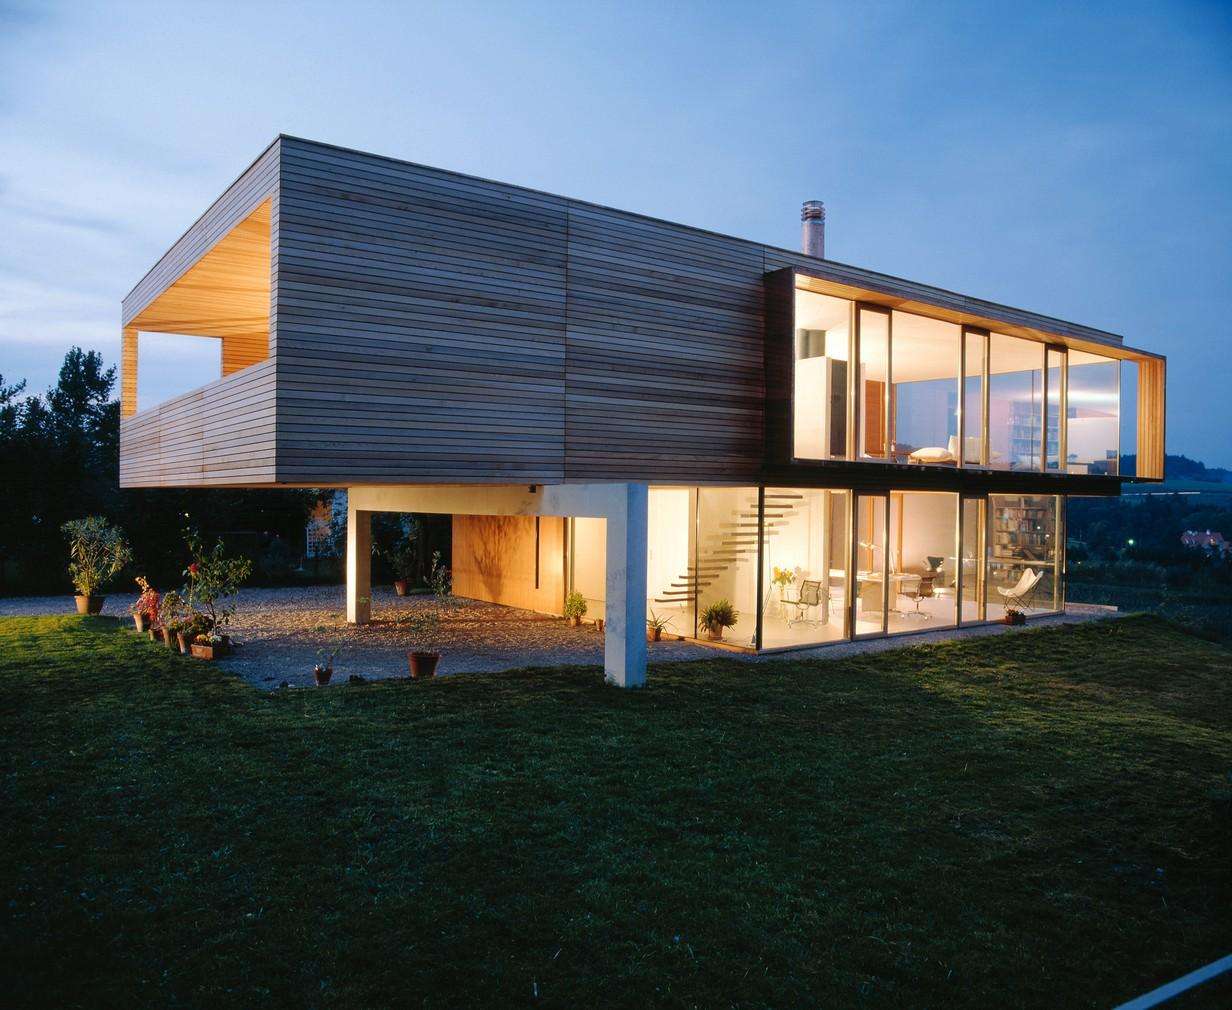 Astonishing Design Of The Modern Style Homes With Wooden Wall Added With Through Looking Glass Wall At Some Parts